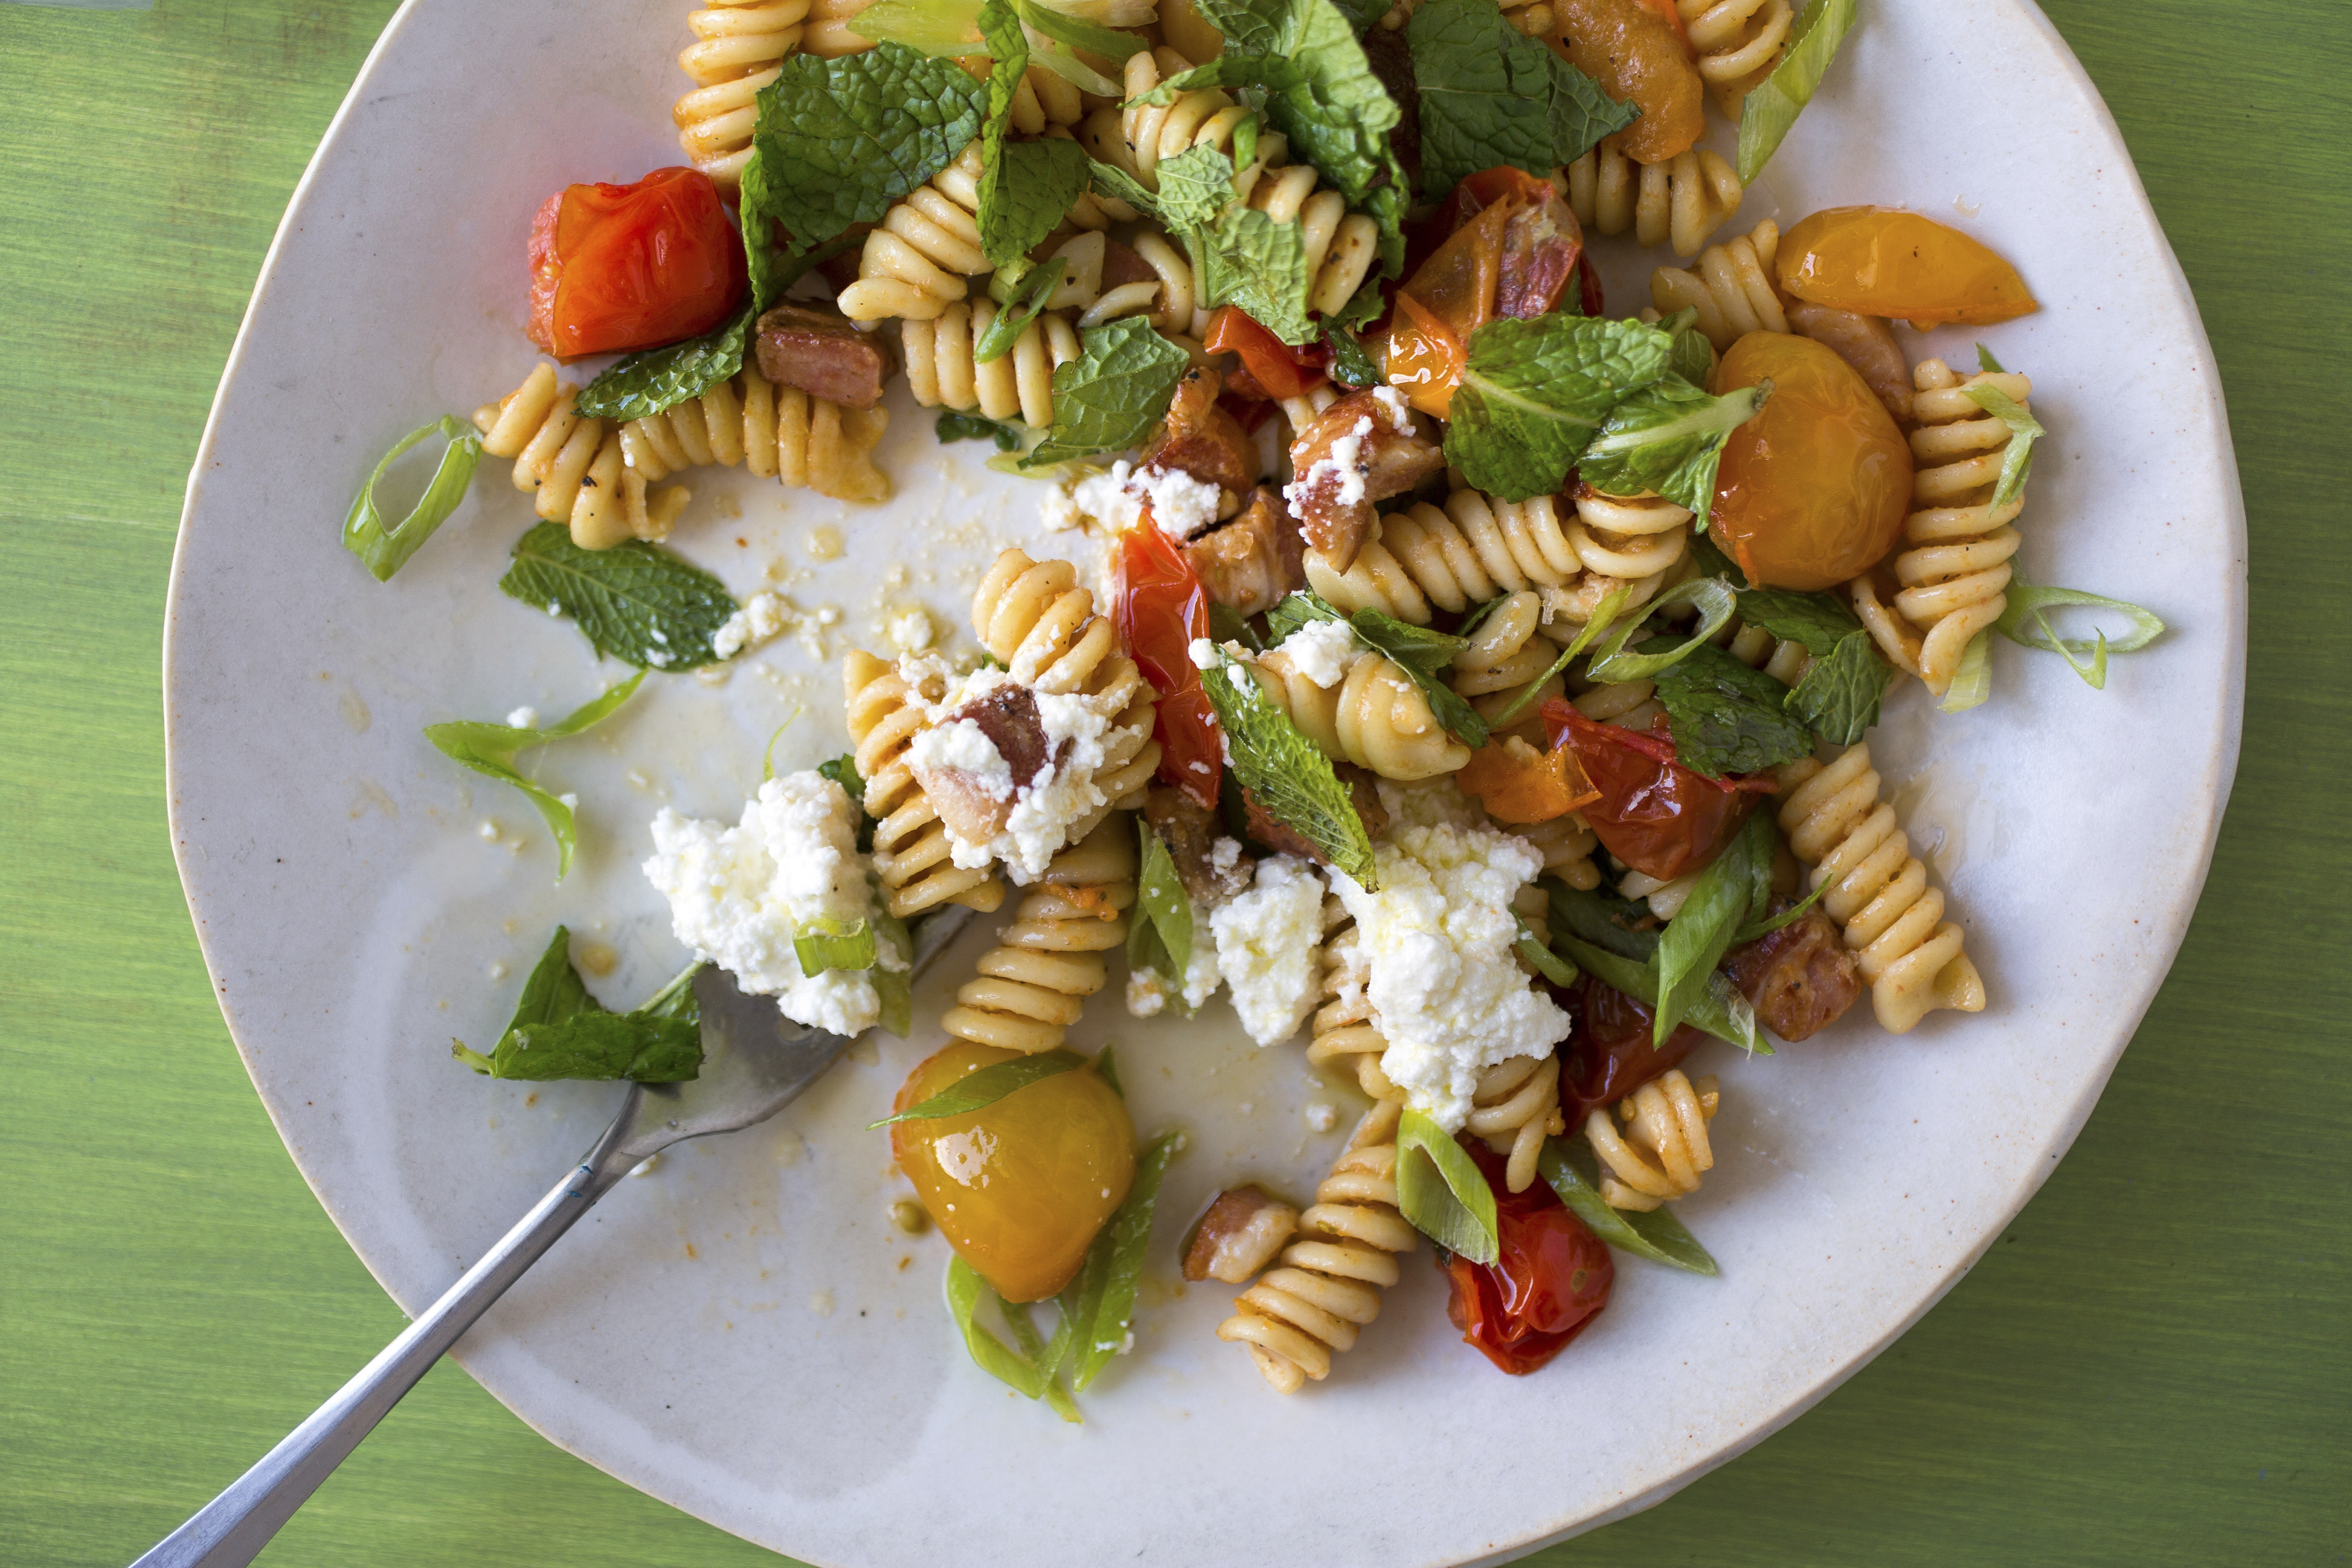 Summer is the ideal time to cook simple, quick-to-prepare fresh tomato pasta dishes in lieu of long-simmered sauces.